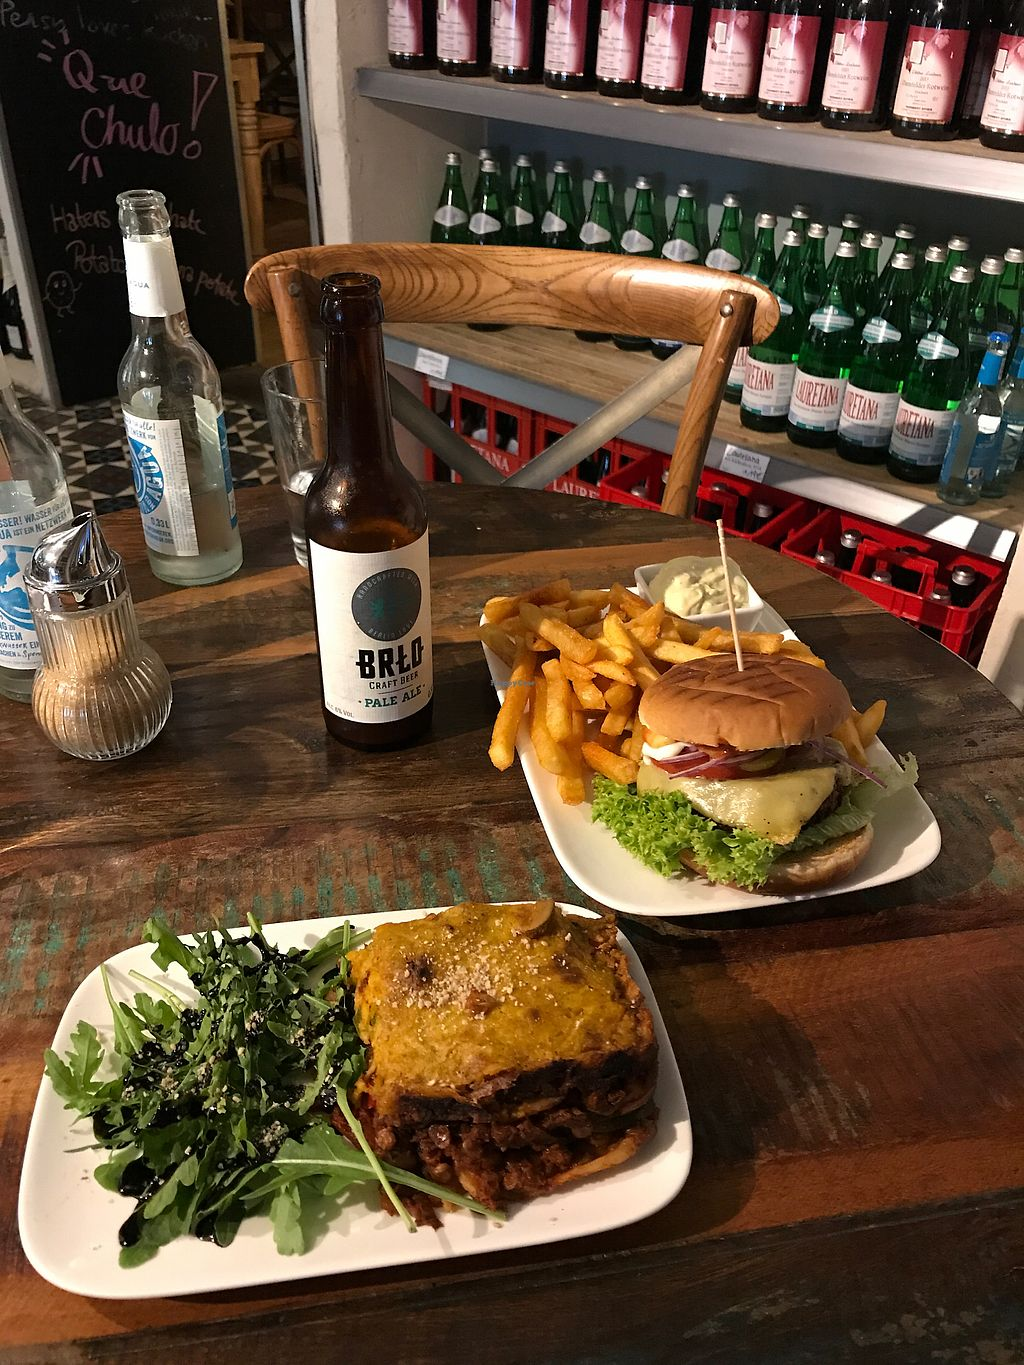 """Photo of Valladares  by <a href=""""/members/profile/bellaskova"""">bellaskova</a> <br/>Delicious vegan lasagna and cheeseburger  <br/> August 29, 2017  - <a href='/contact/abuse/image/54507/298738'>Report</a>"""